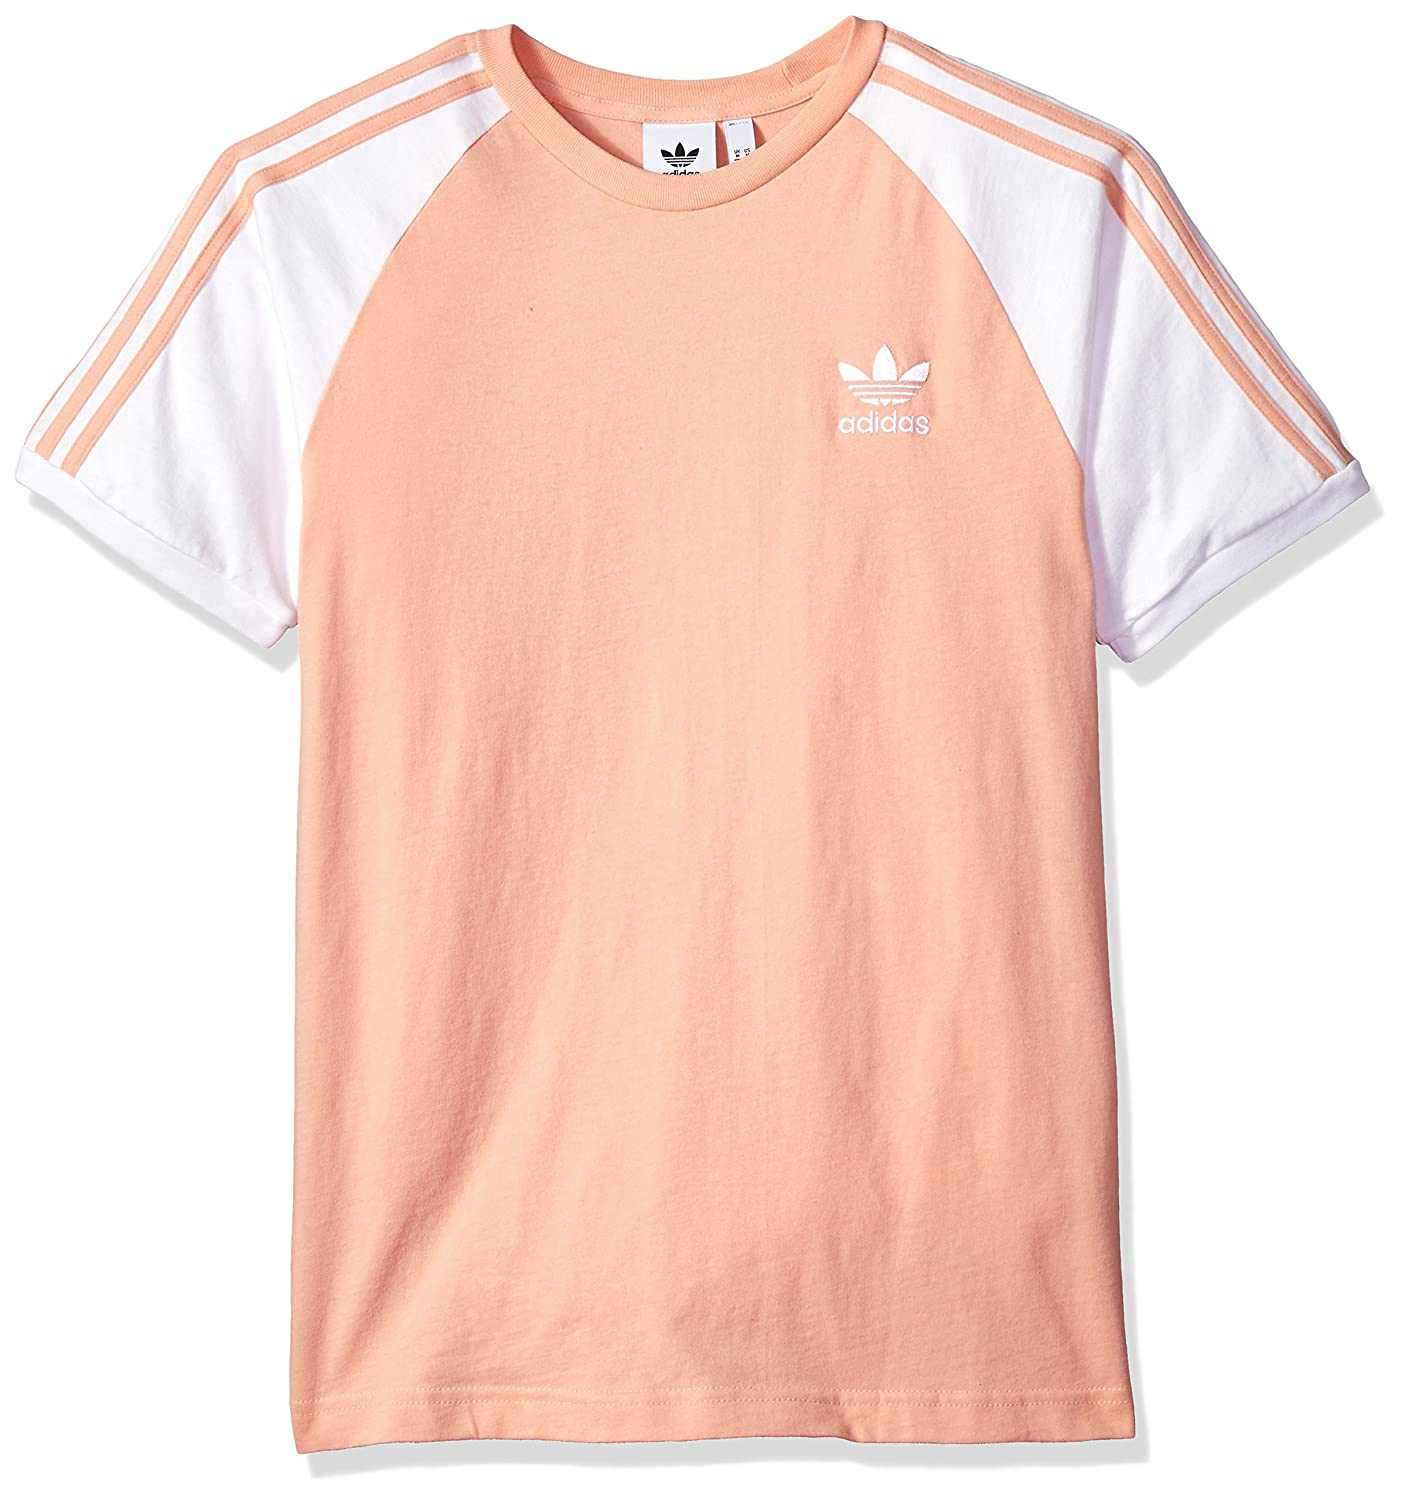 a9707bea adidas Originals Men's Originals 3 Stripes Tee at Amazon Men's Clothing  store: